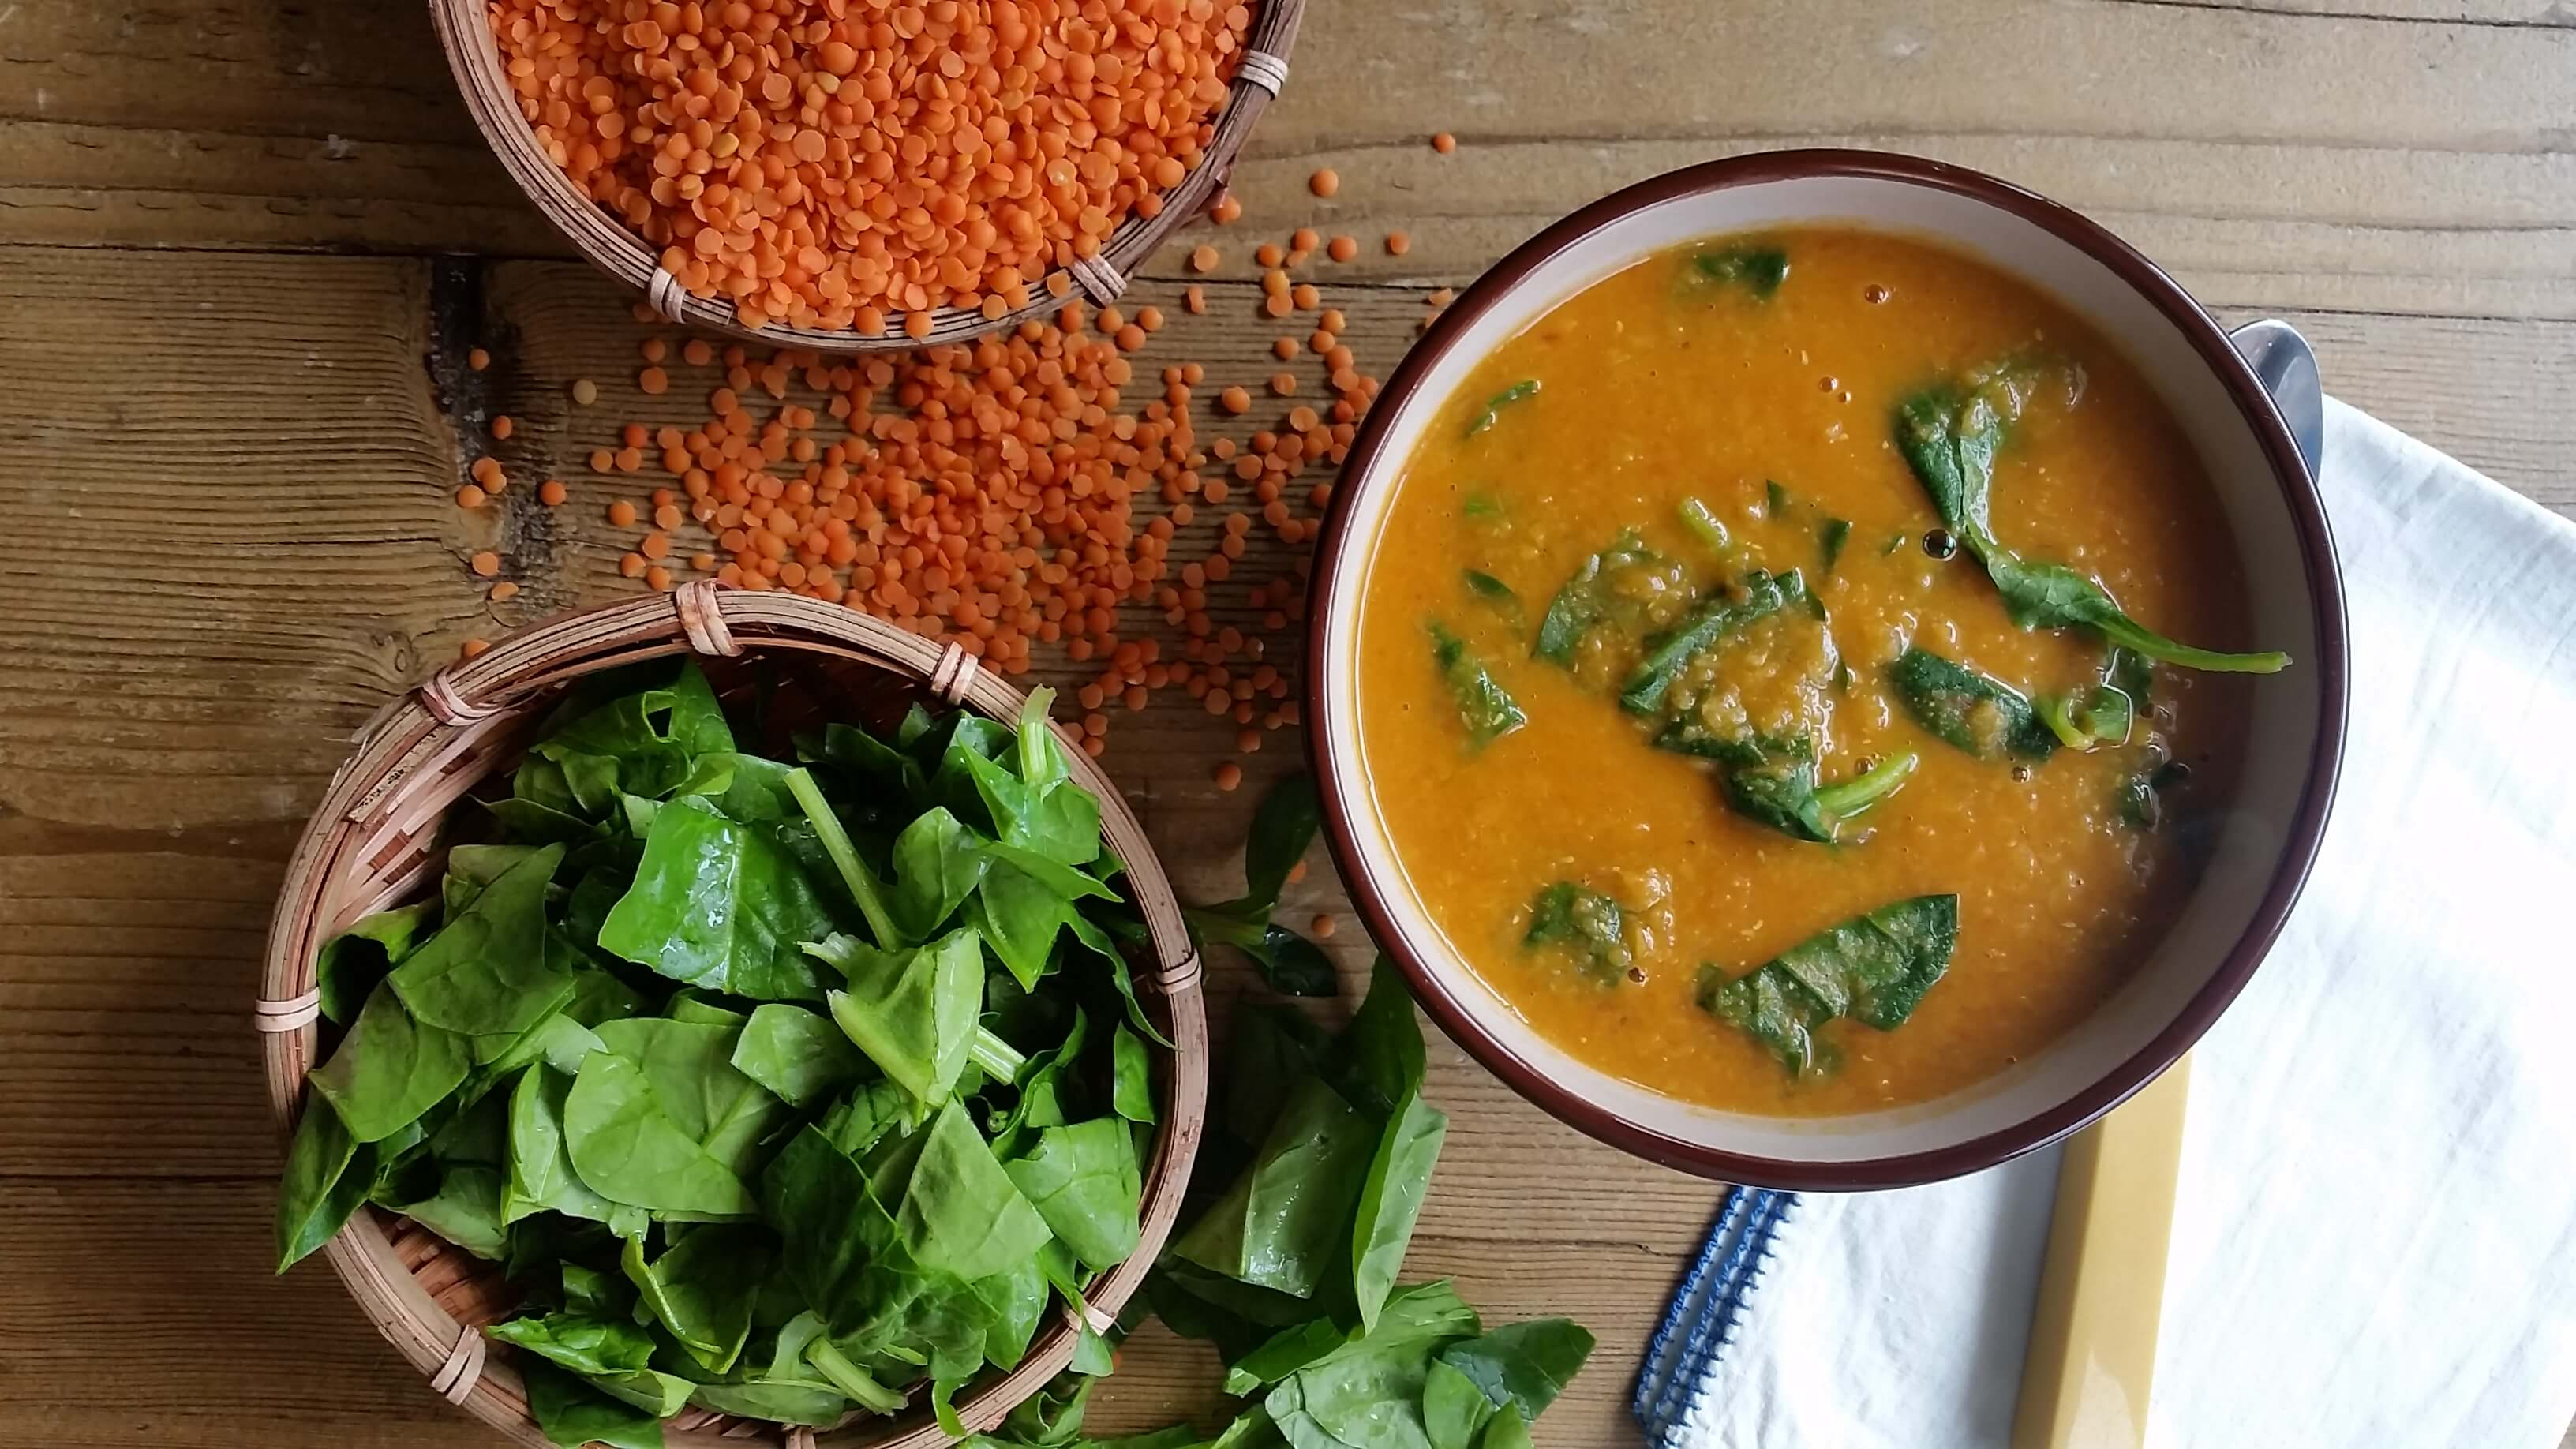 Red Lentil Soup Recipe with Curry Powder and Spinach